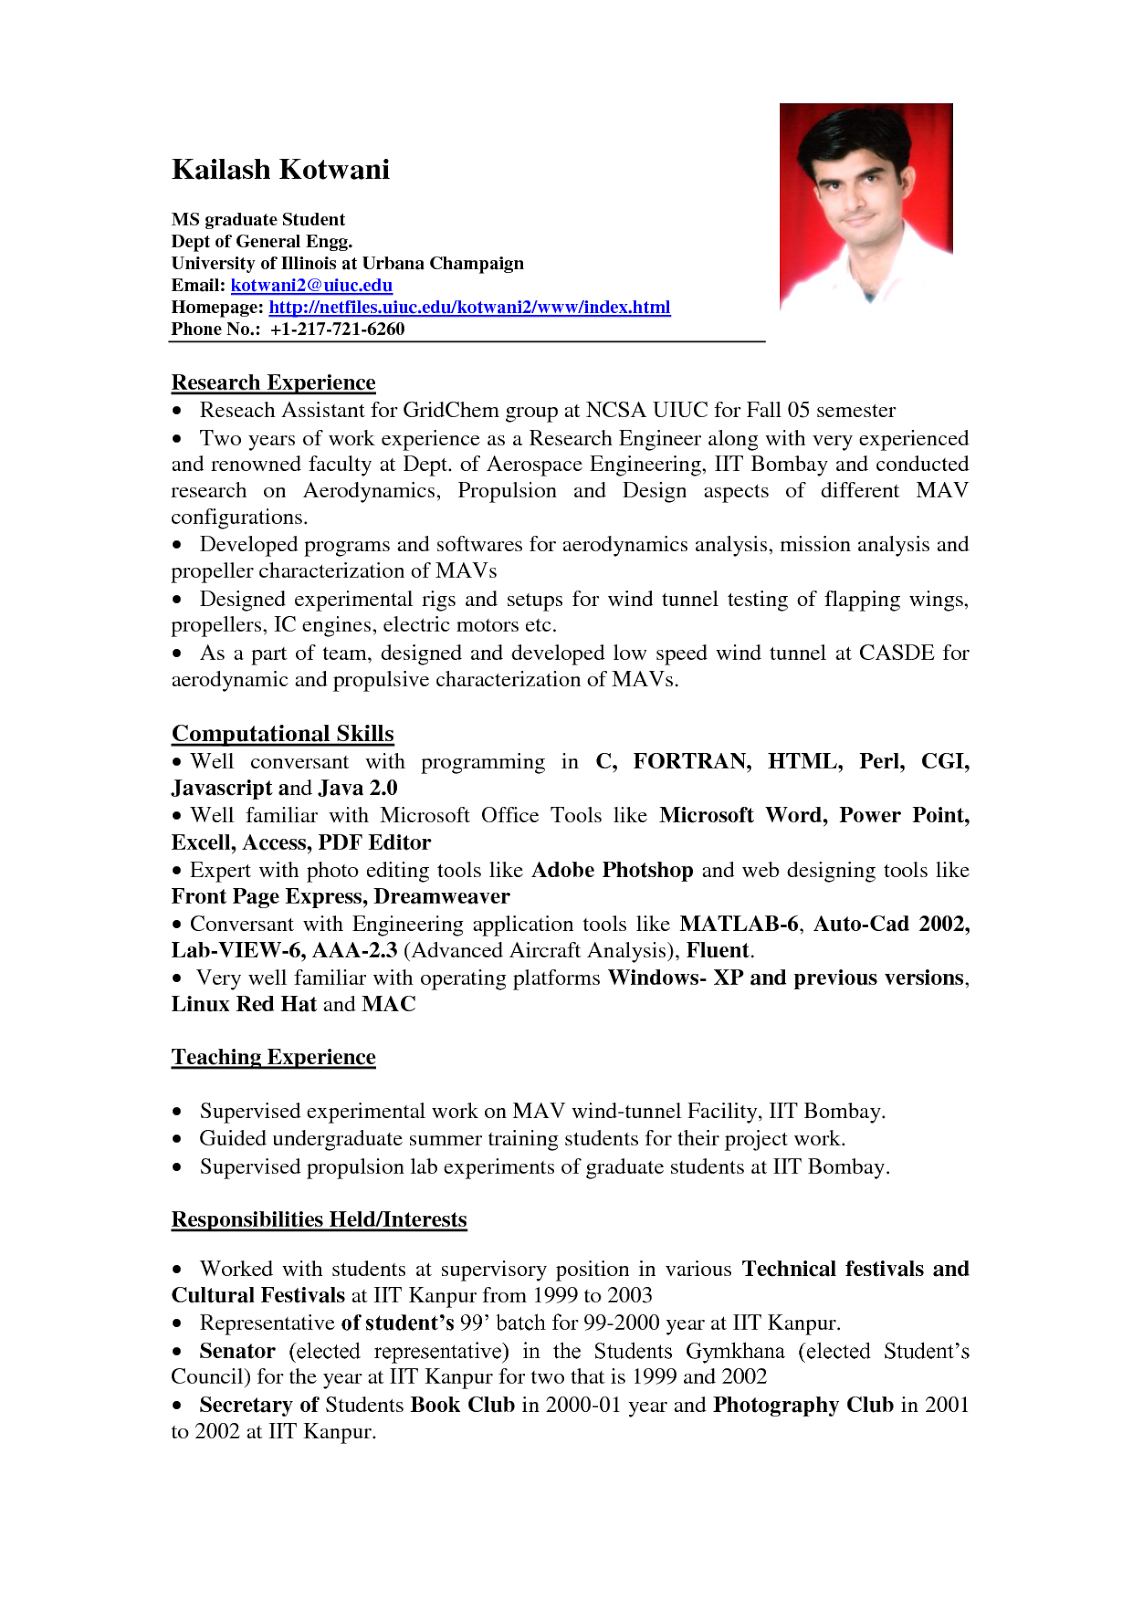 sample resume format for students